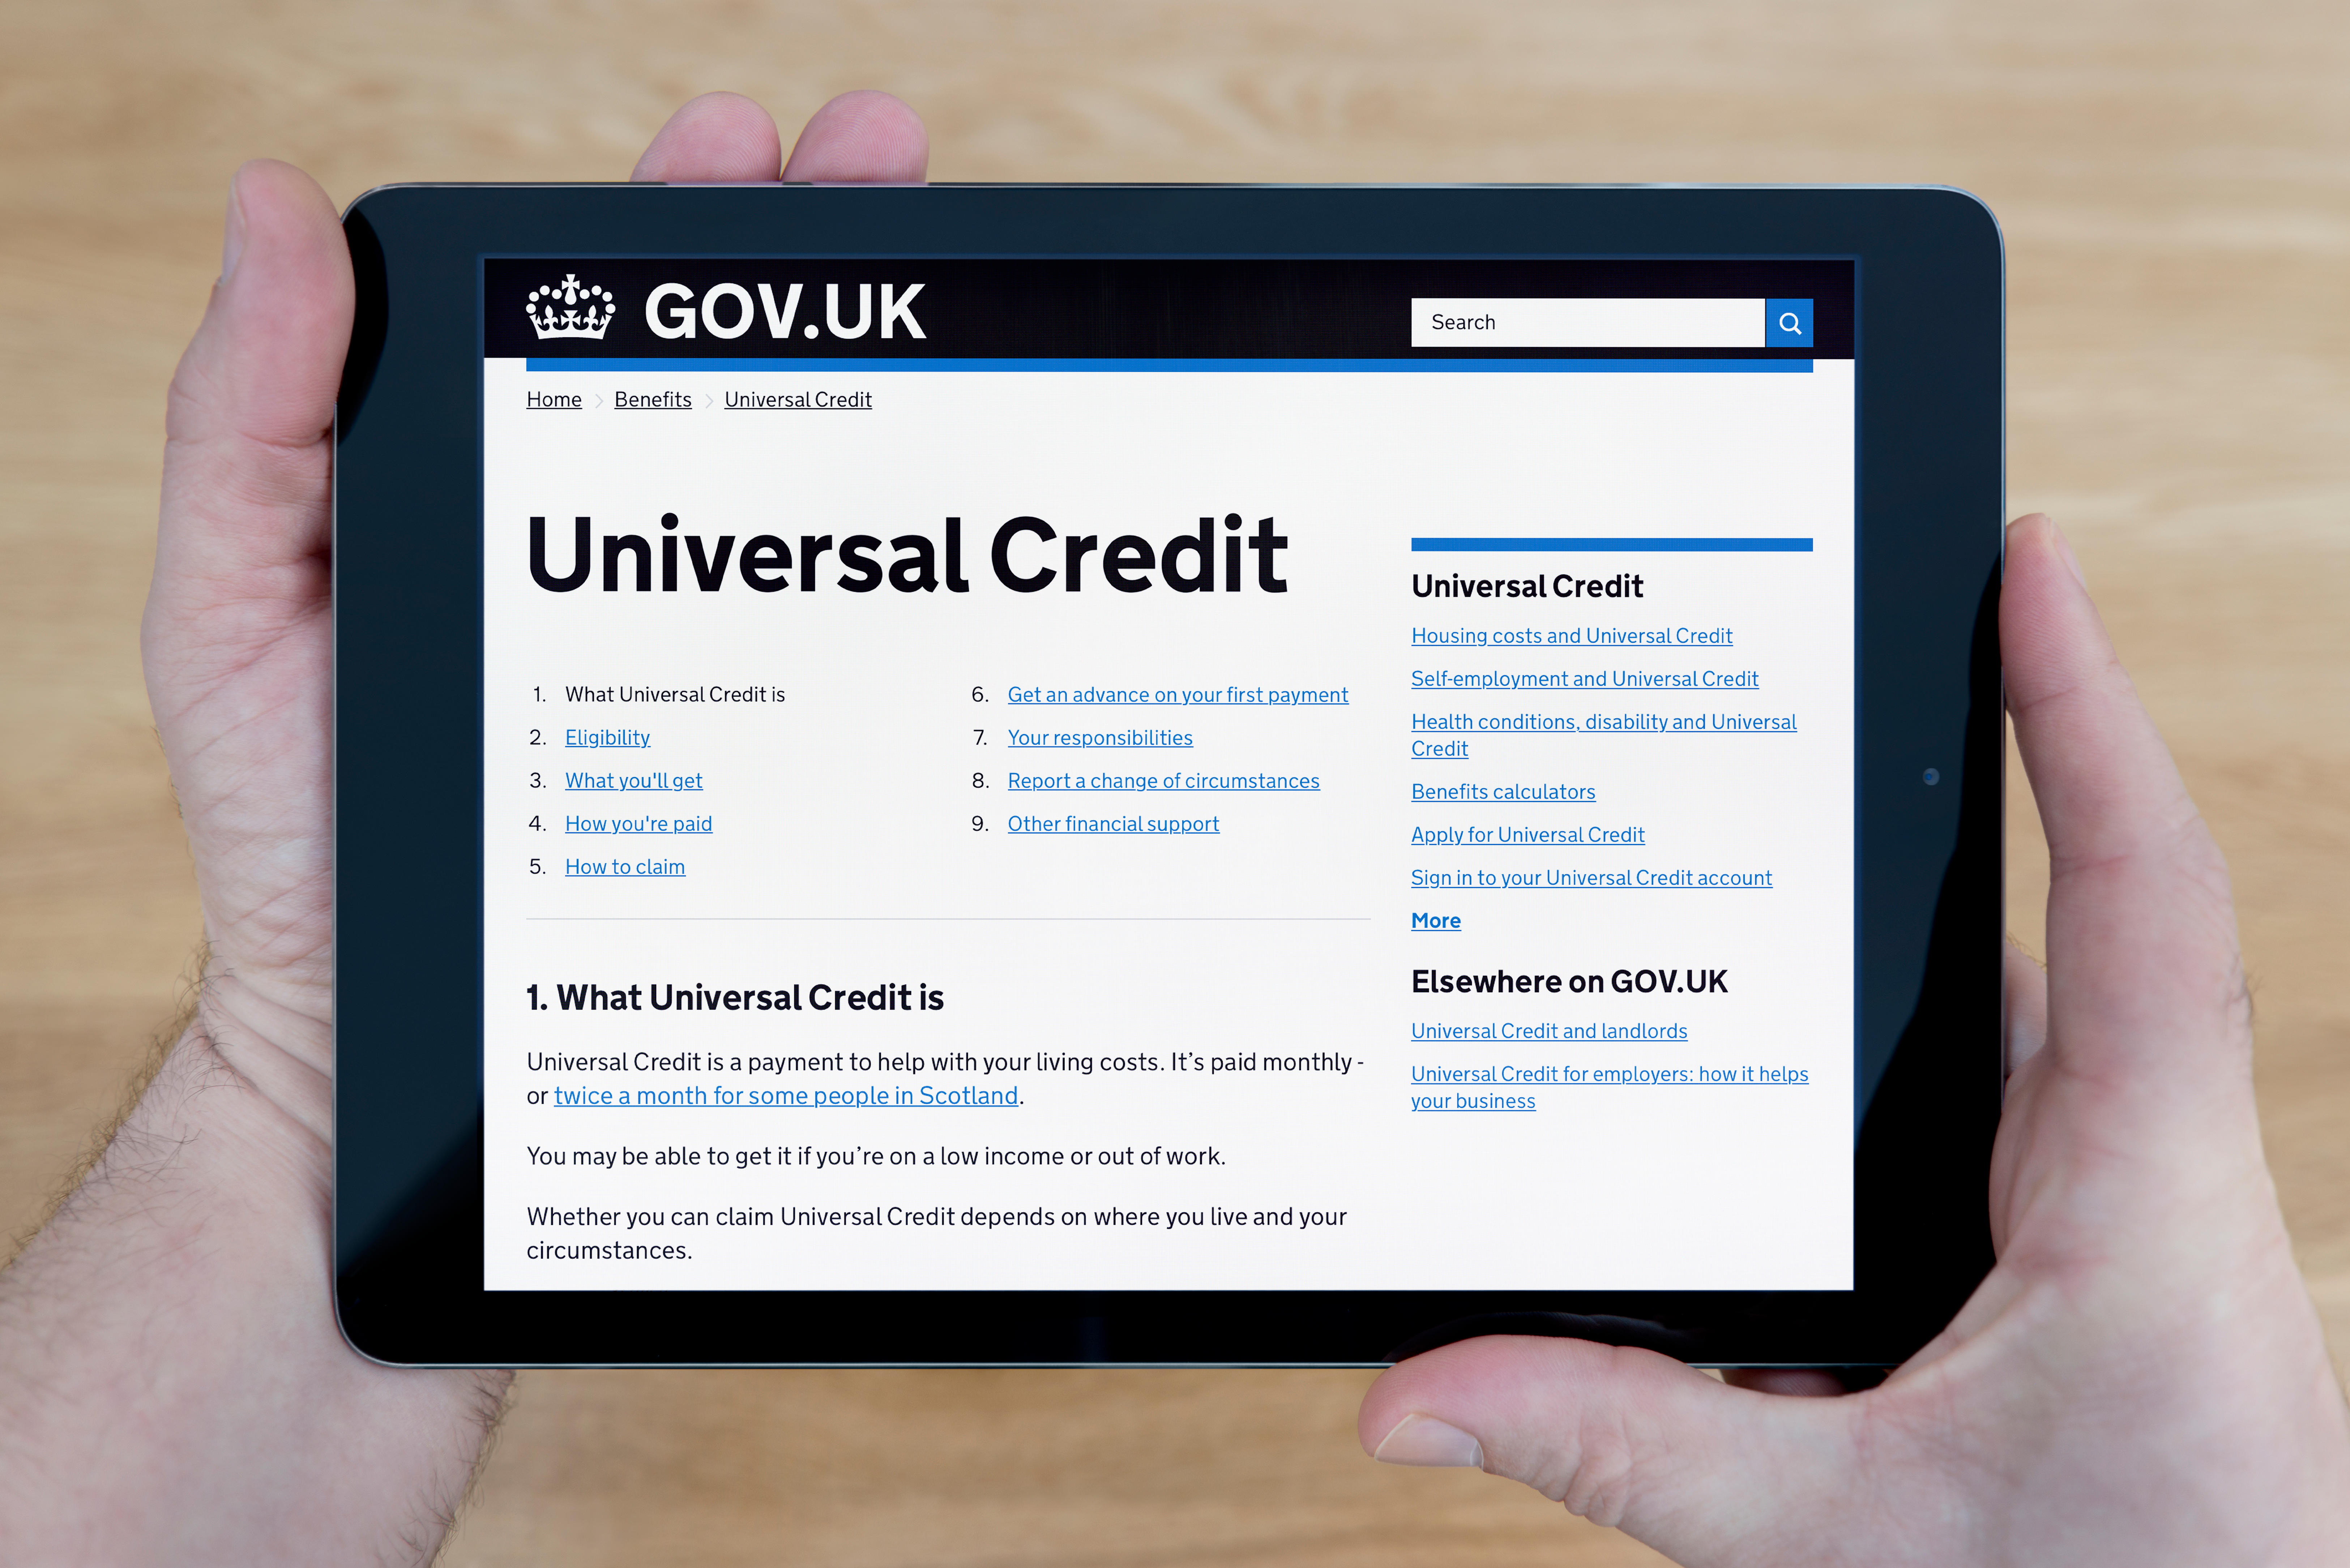 The amount of Universal Credit you are entitled to depends on a number of circumstances